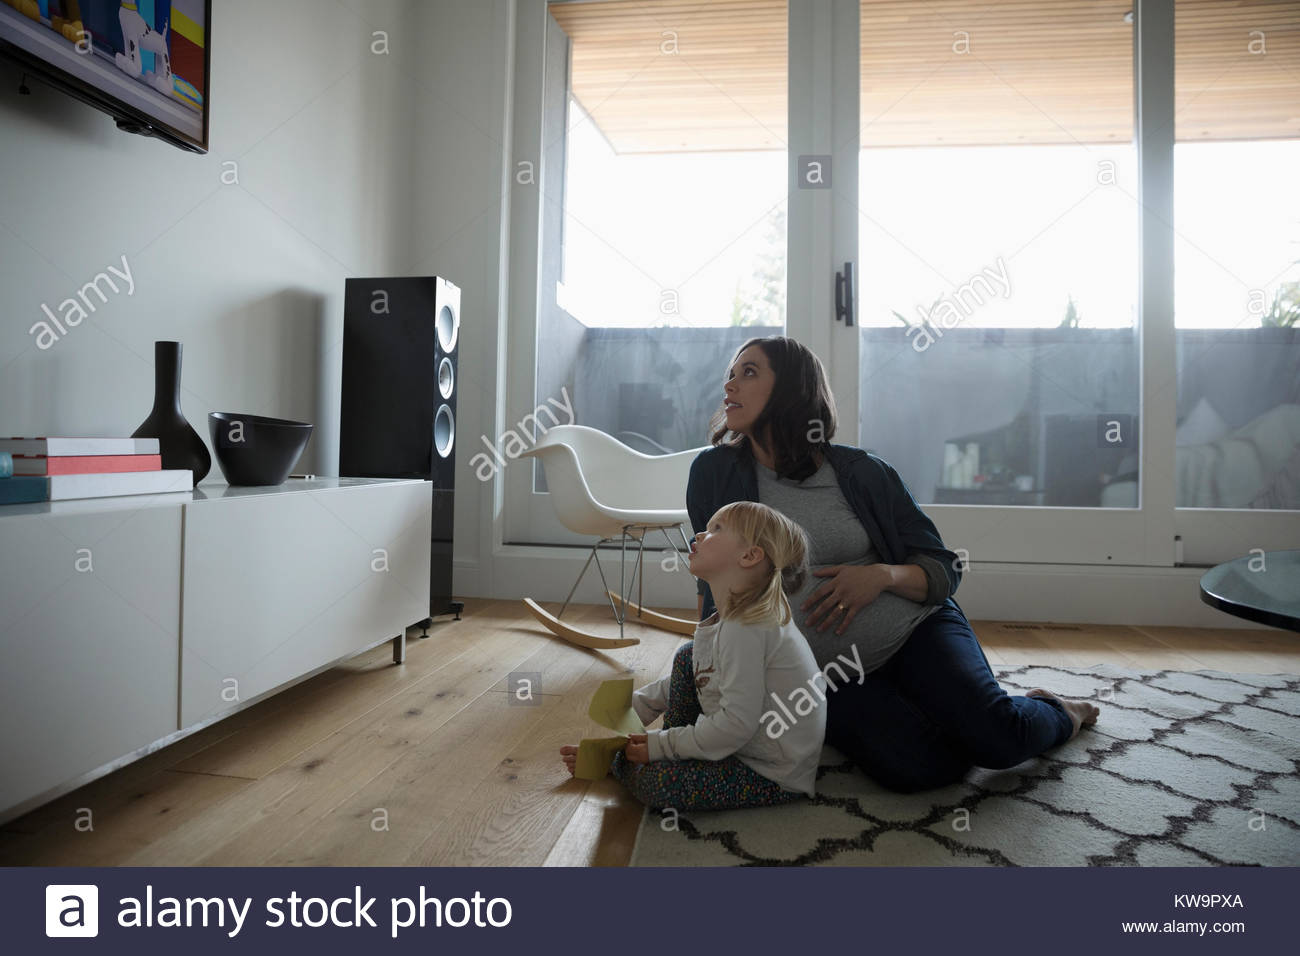 Pregnant mother and toddler daughter watching TV on living room floor - Stock Image